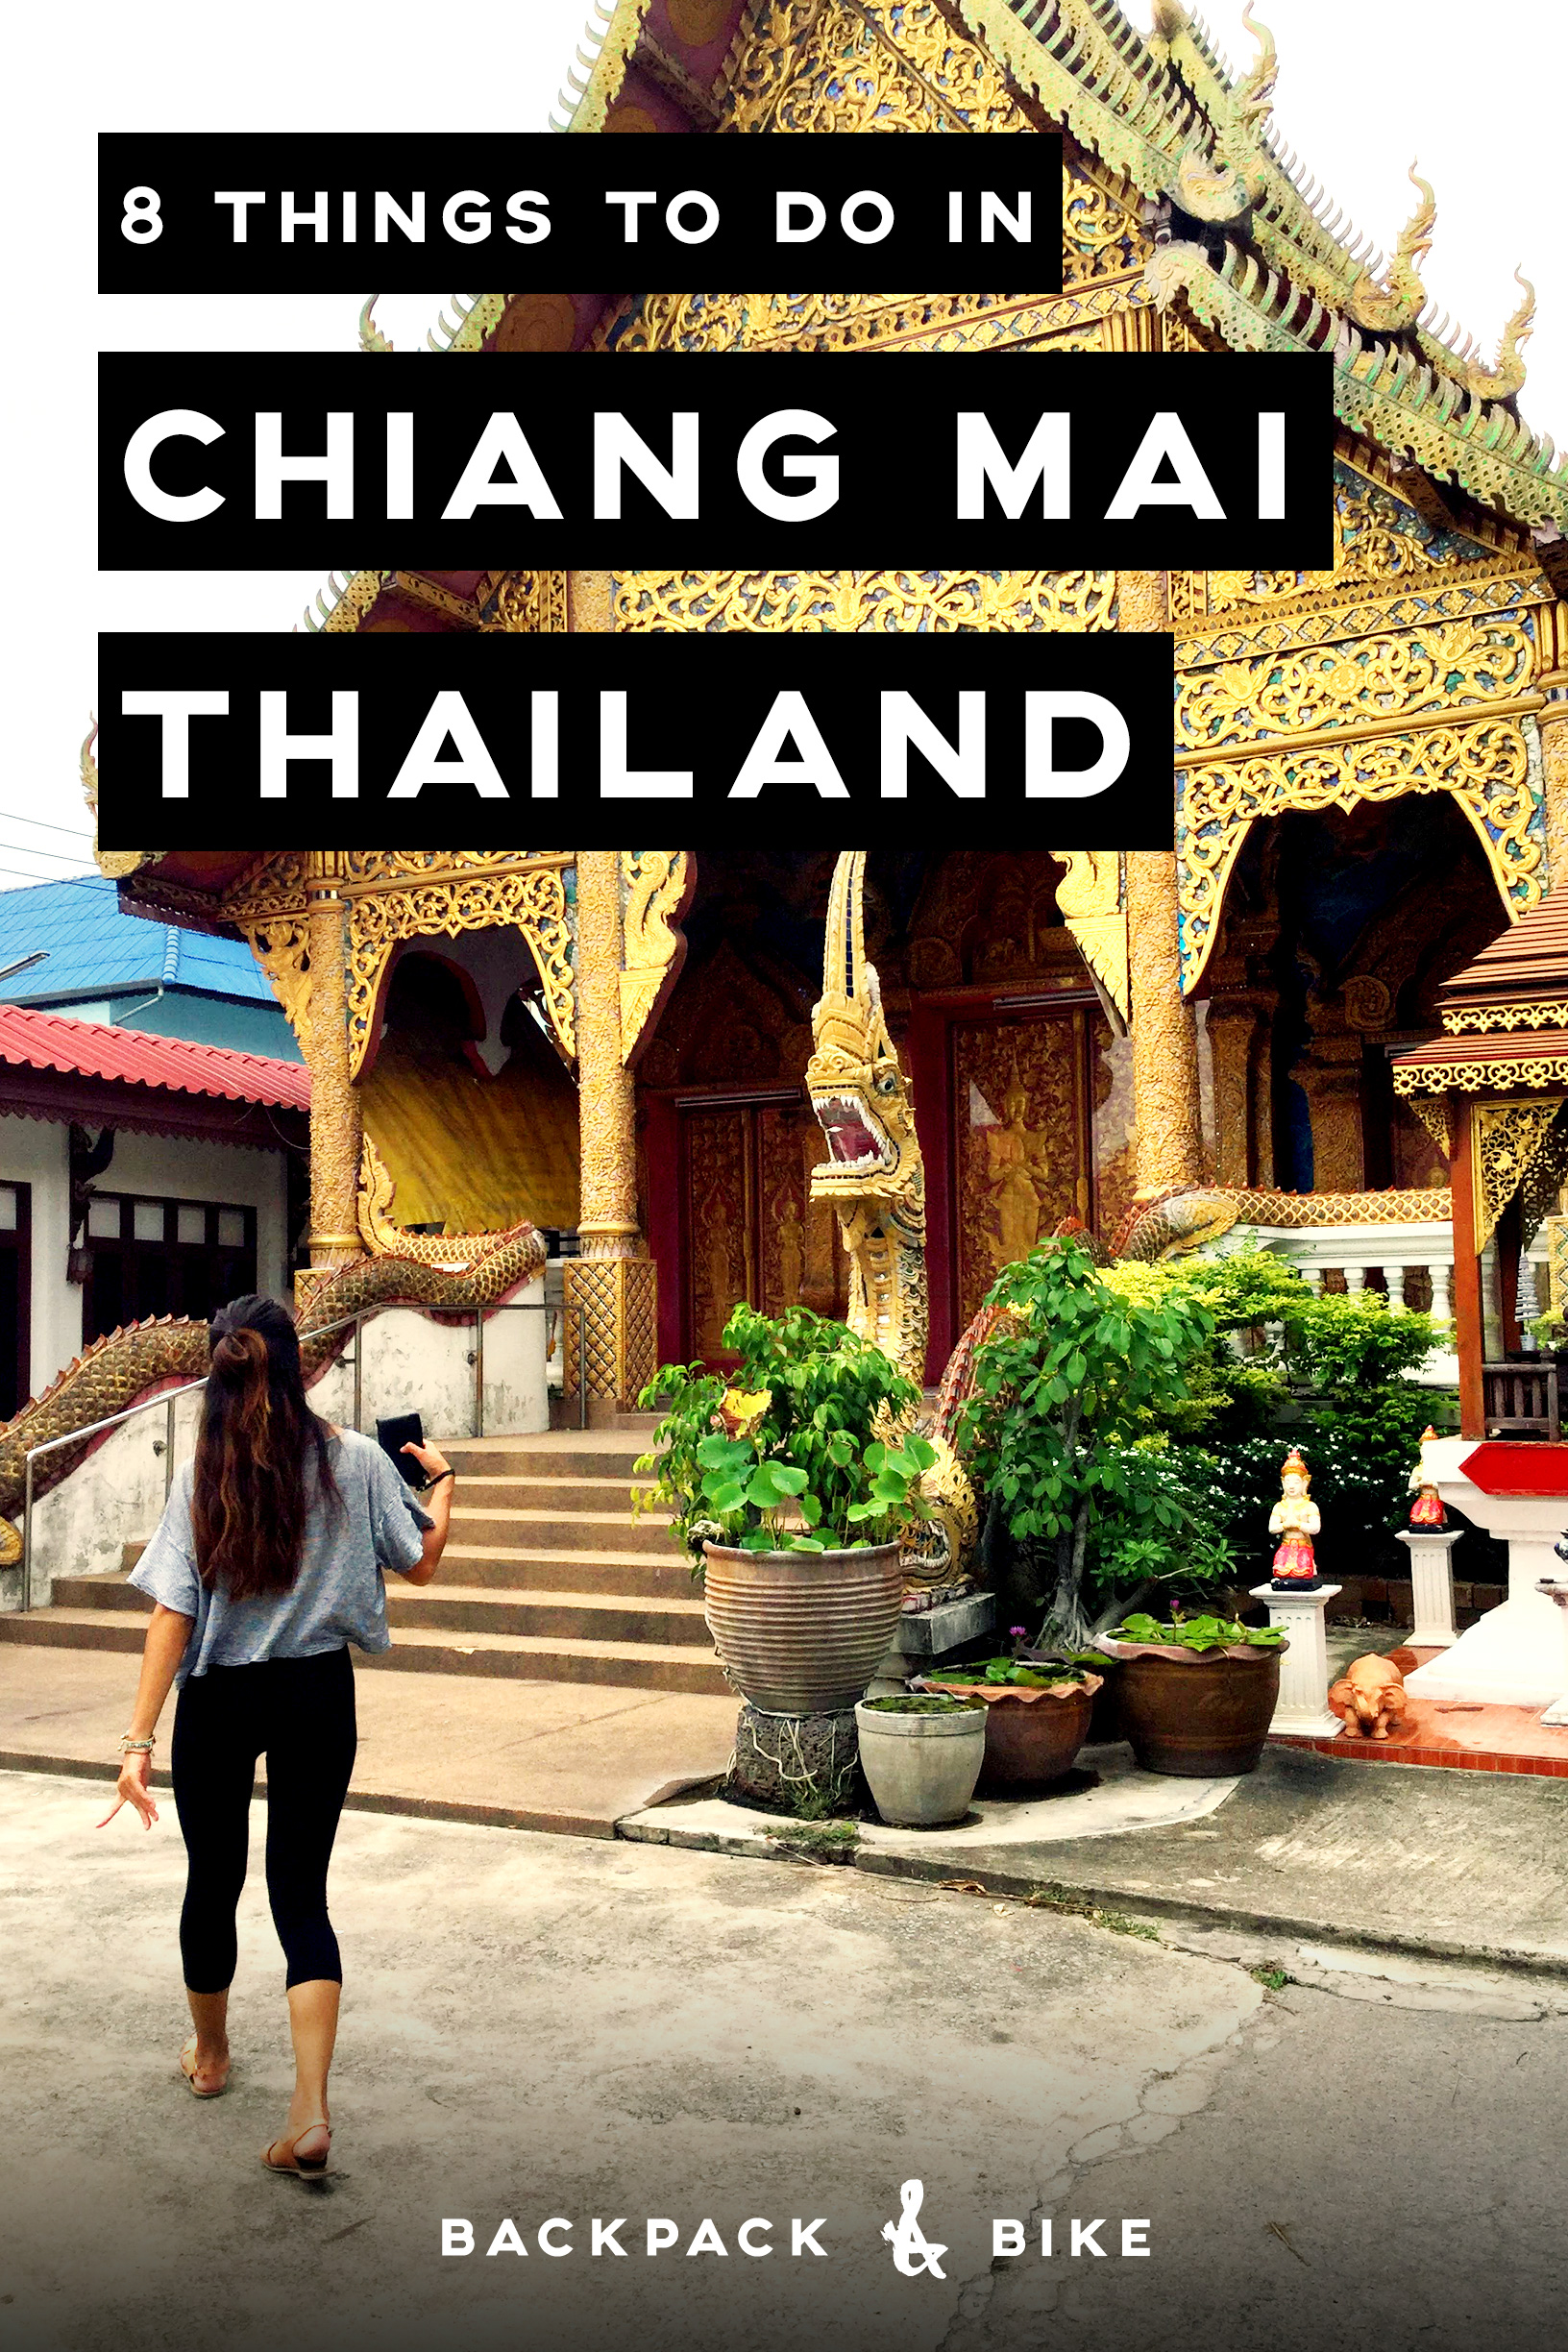 In Chiang Mai, Thailand, buddhist temples and air conditioned hipster cafes live in harmony. Spend some time wandering the streets and hit up these 8 things to do in Chiang Mai that won't break your budget.